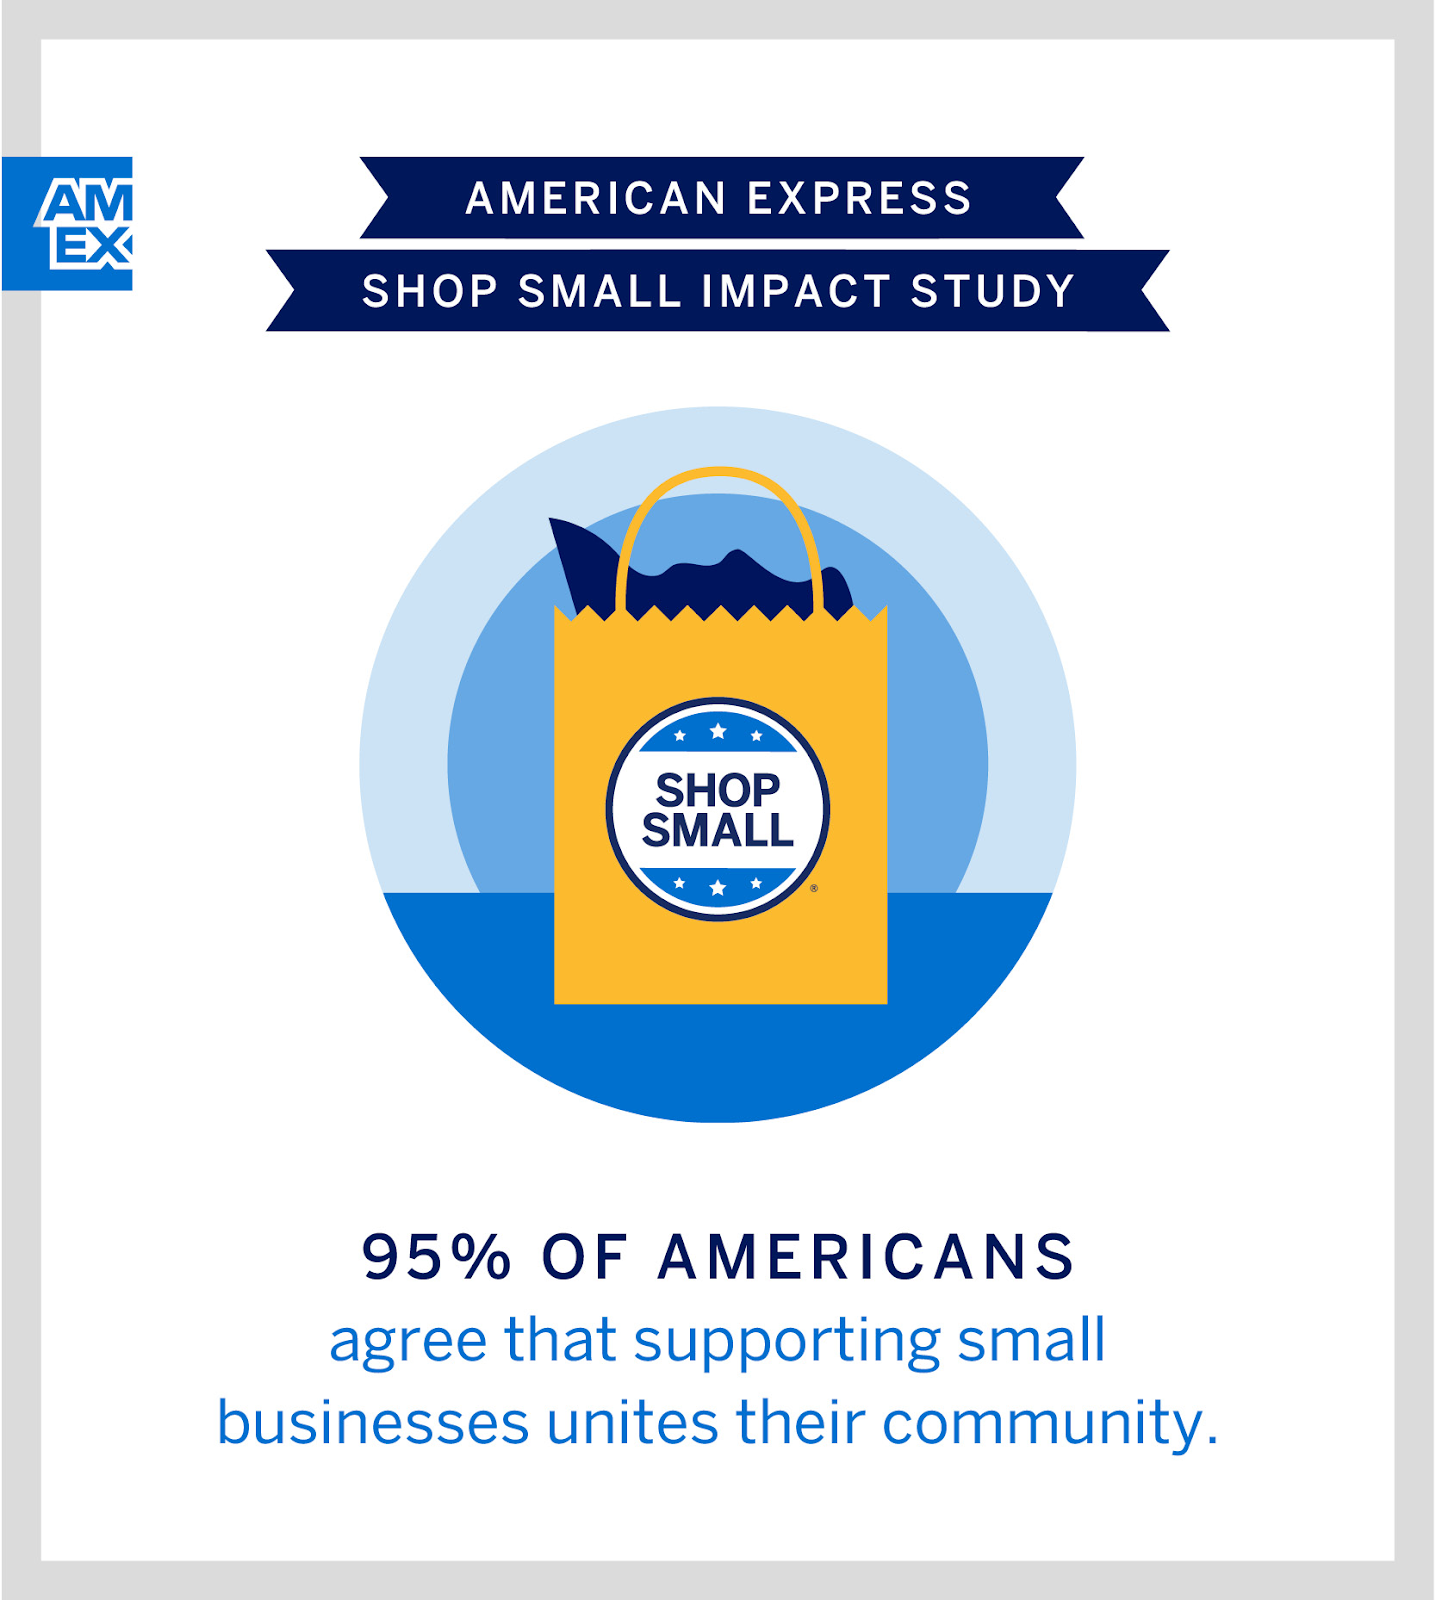 Online Brand Promotion by American Express | VDO.AI